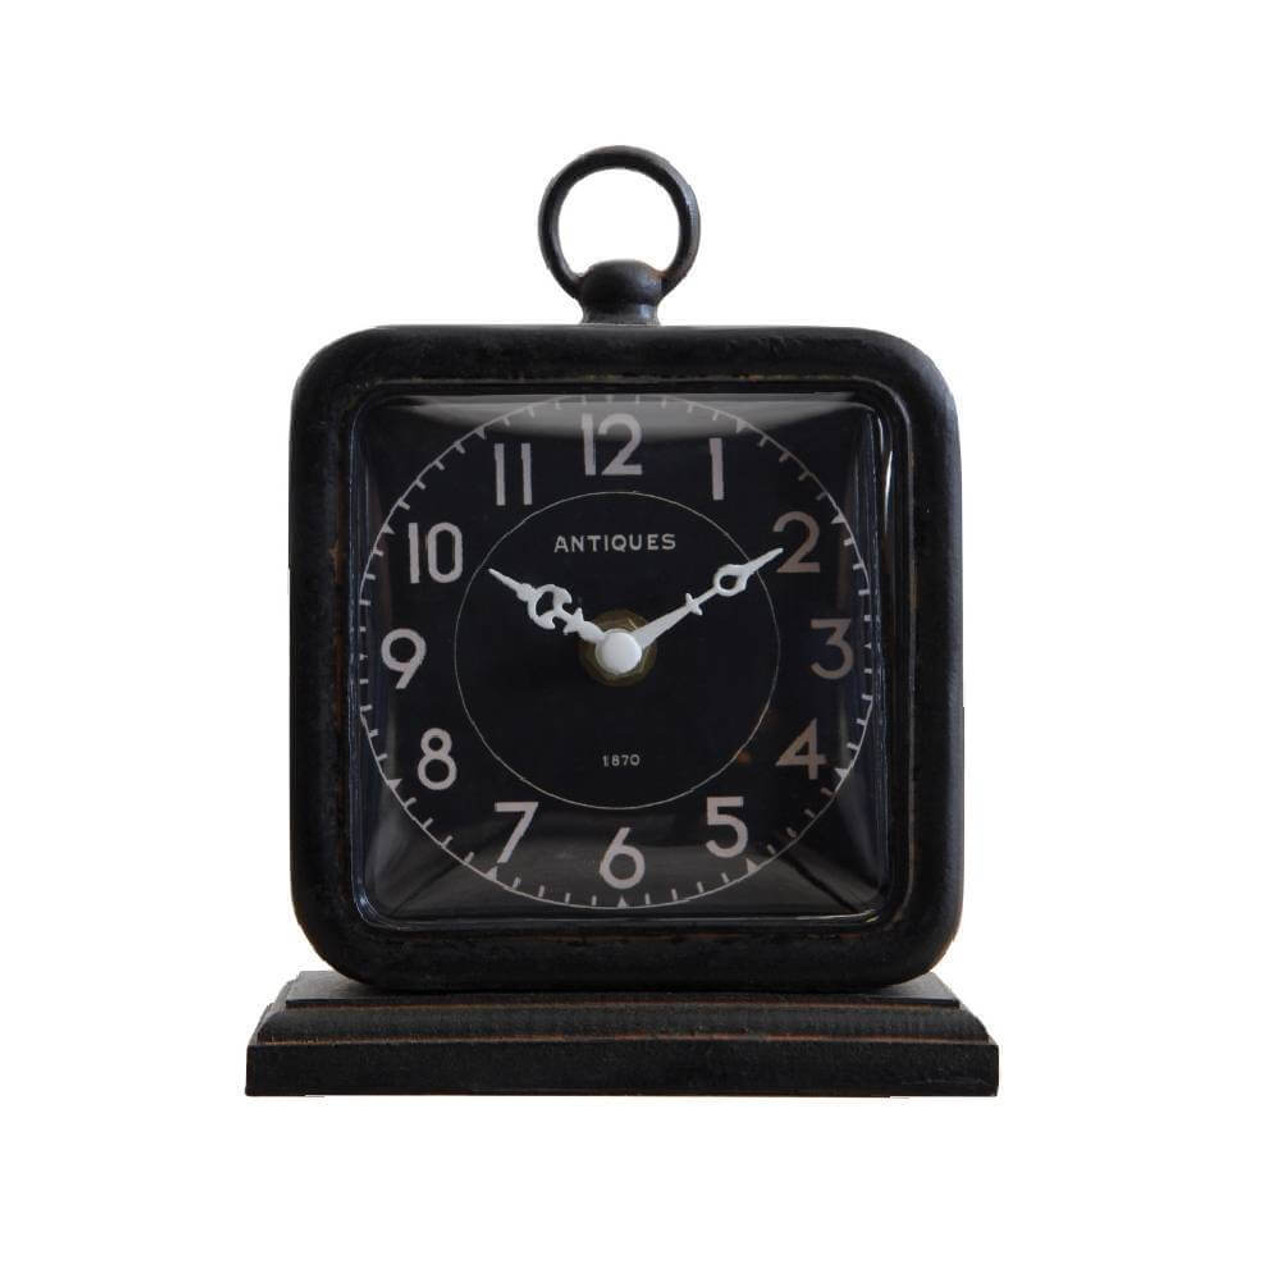 """This pewter table clock, featuring a matte black finish, will compliment any decor. 5"""" W x 6.25""""H. Requires one AA battery (not included)."""